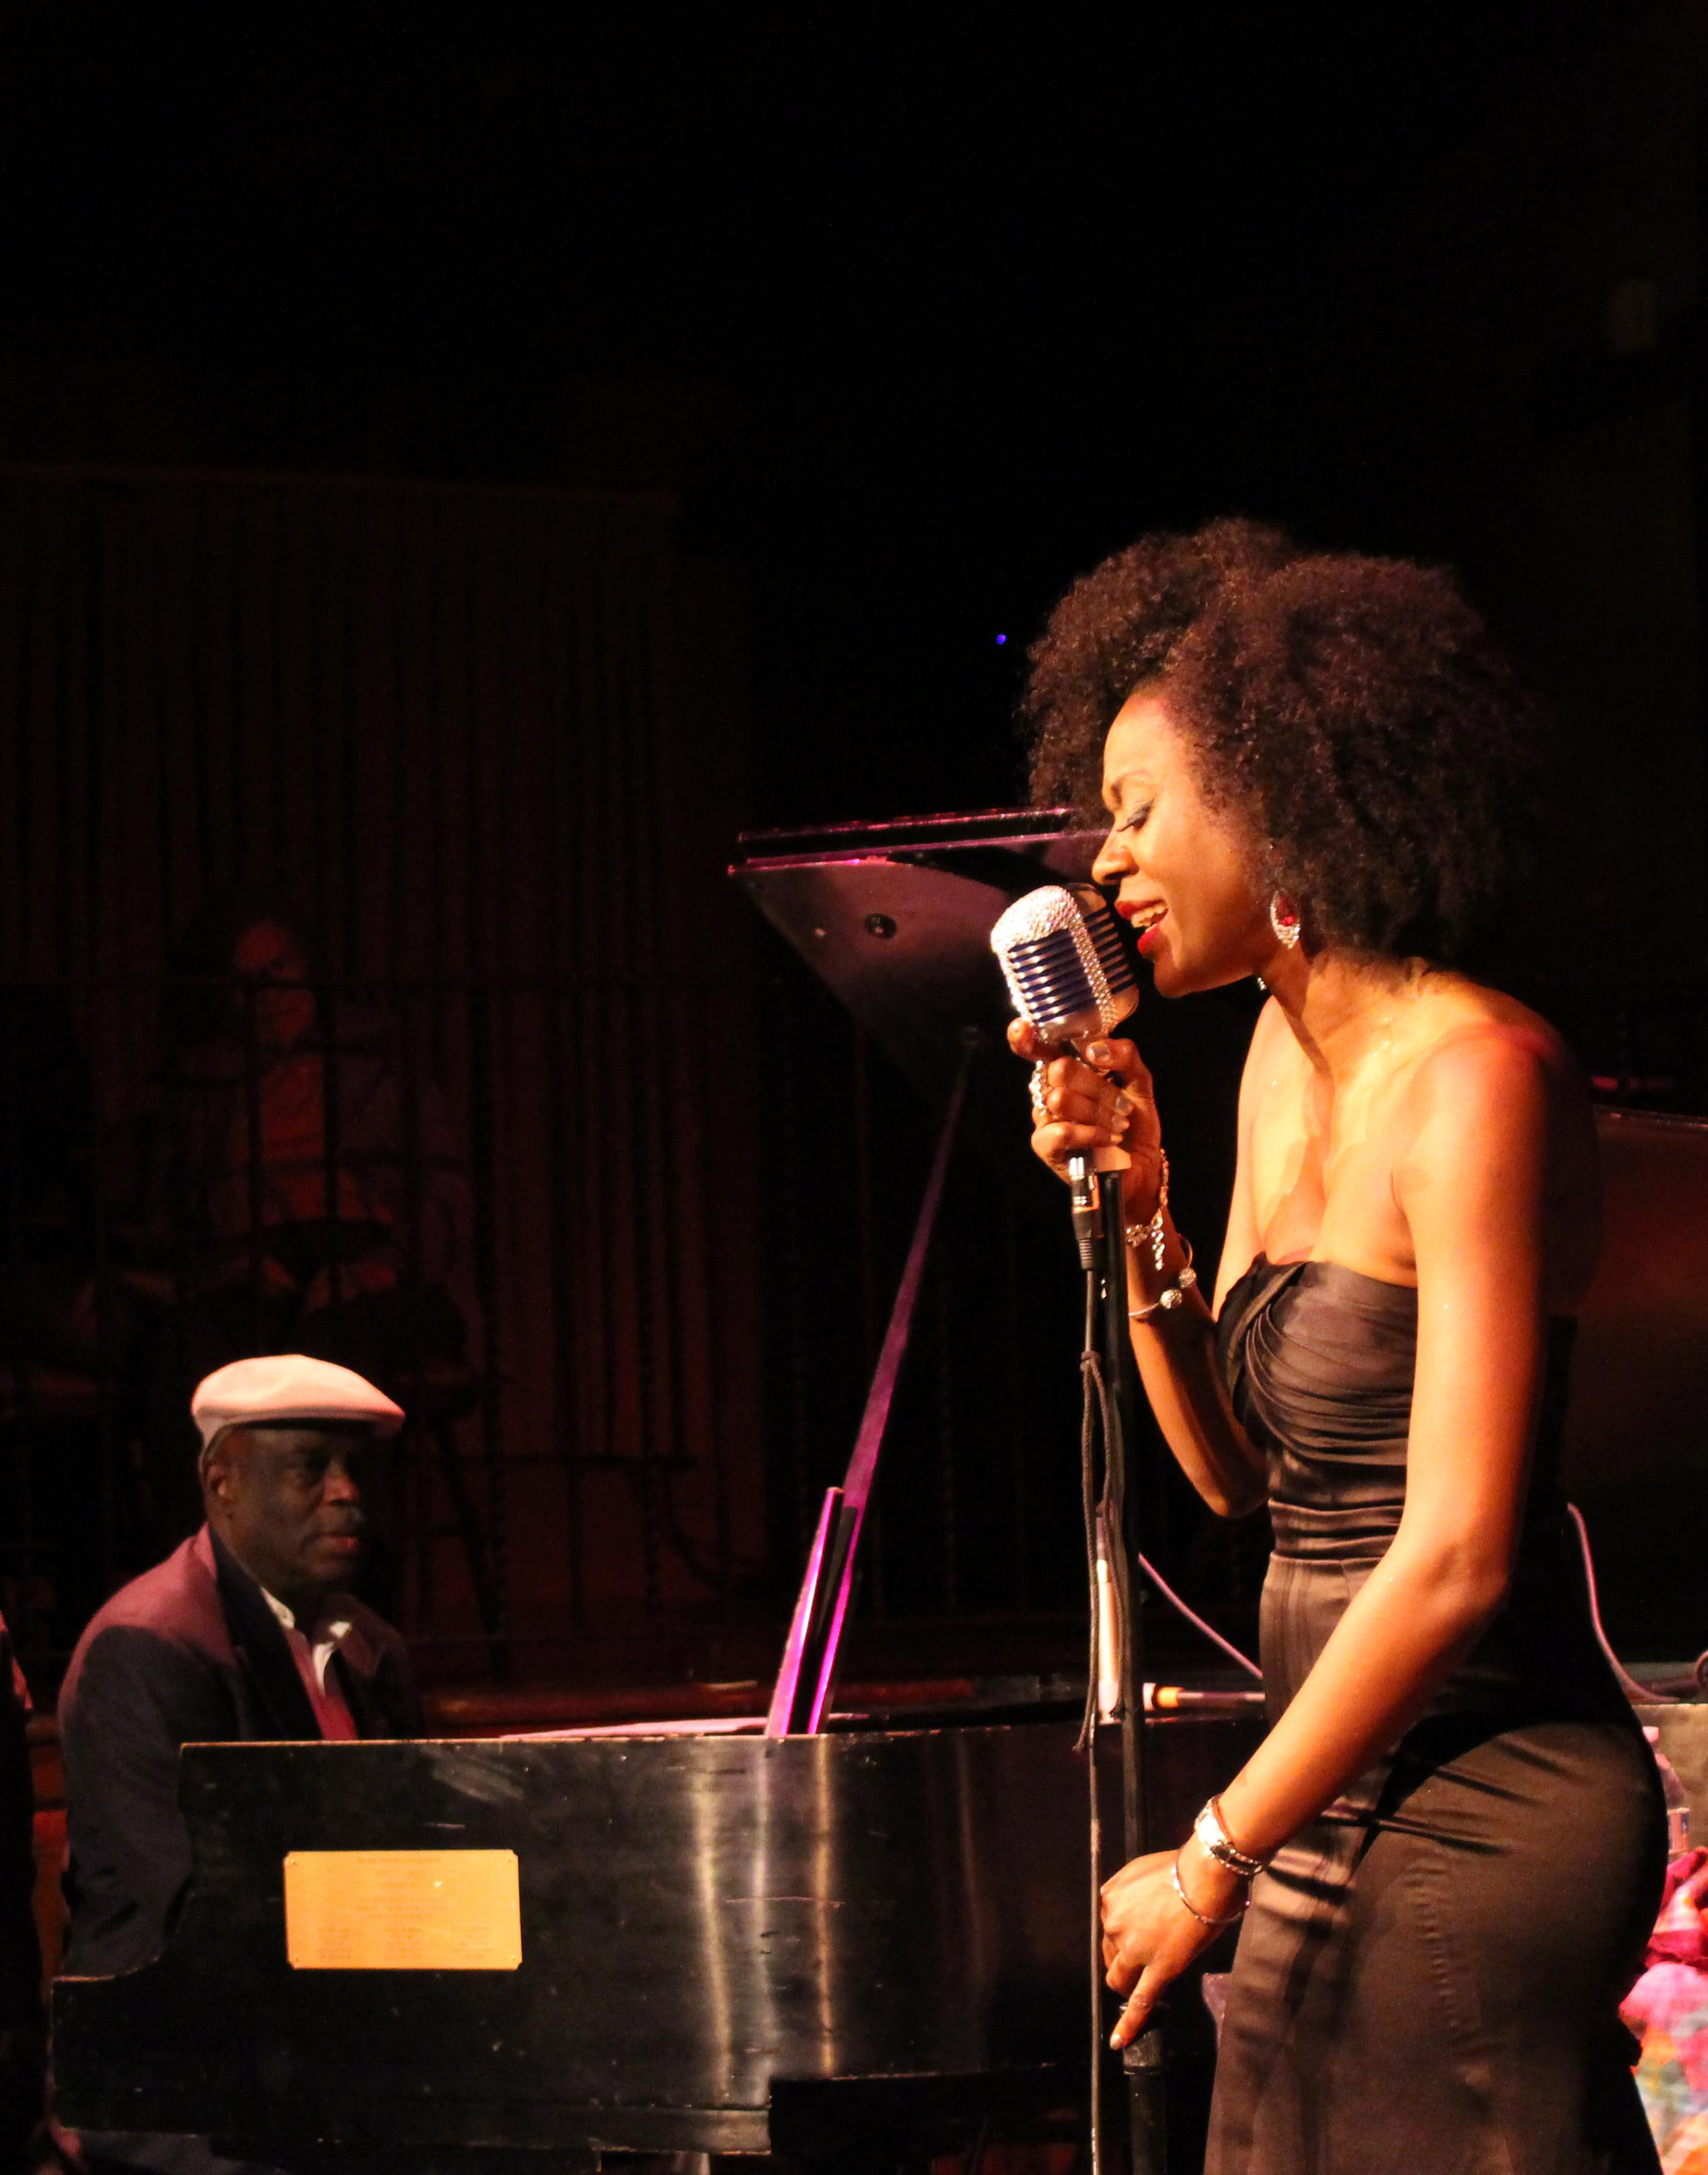 Nayo Jones sings at microphone during live show.